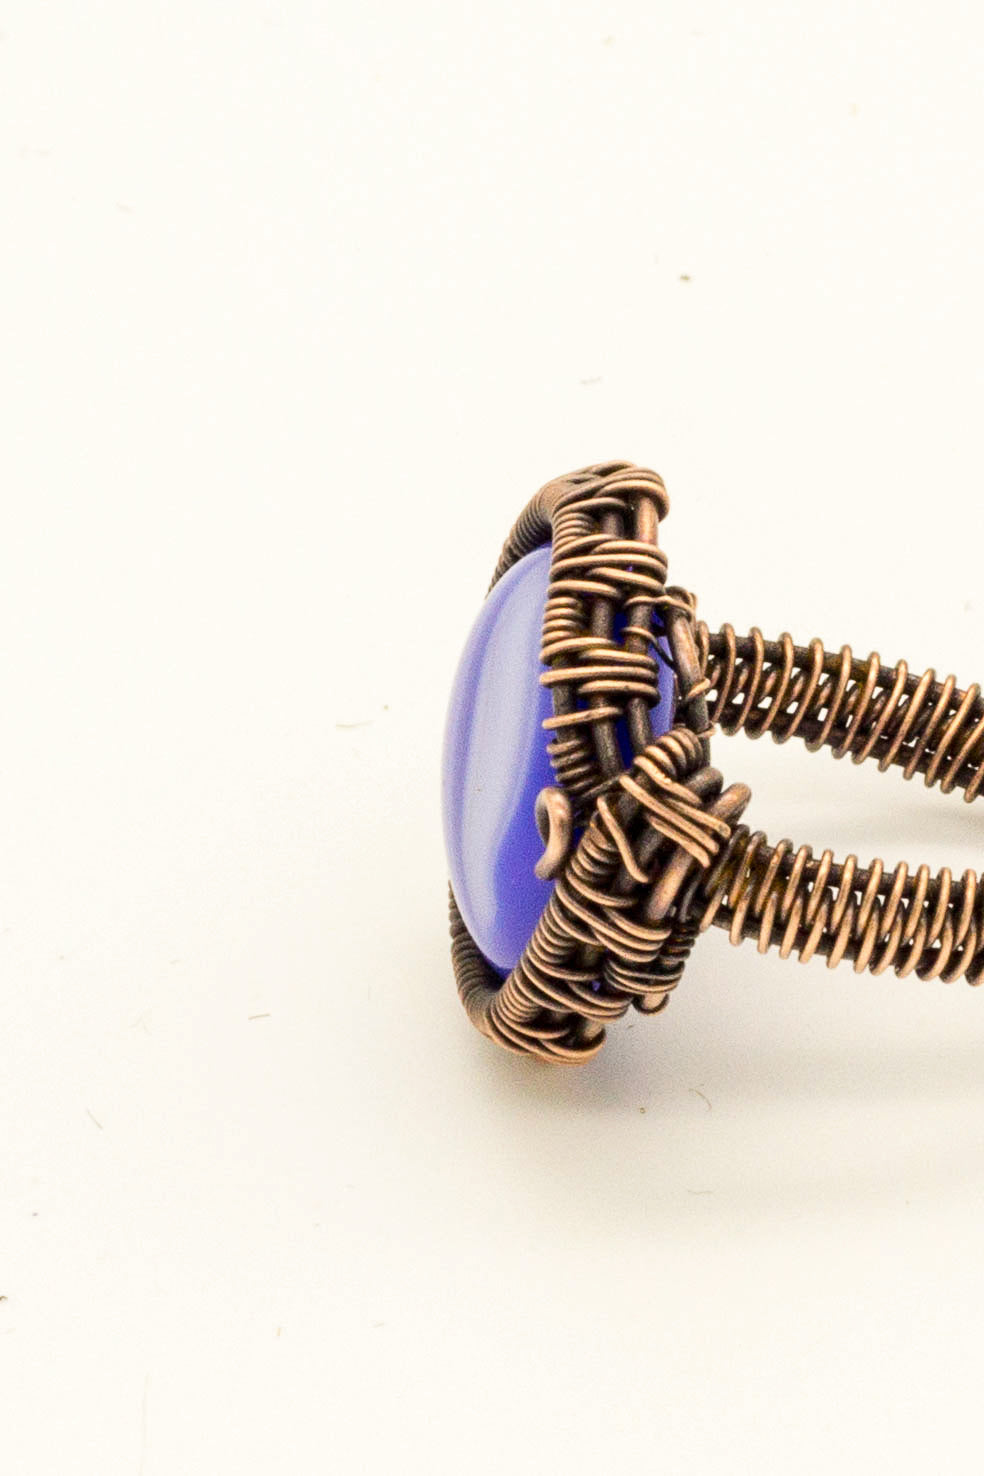 streaked-blue-fused-glass-copper-wire-wrapped-ring-nymph-in-the-woods-jewelry